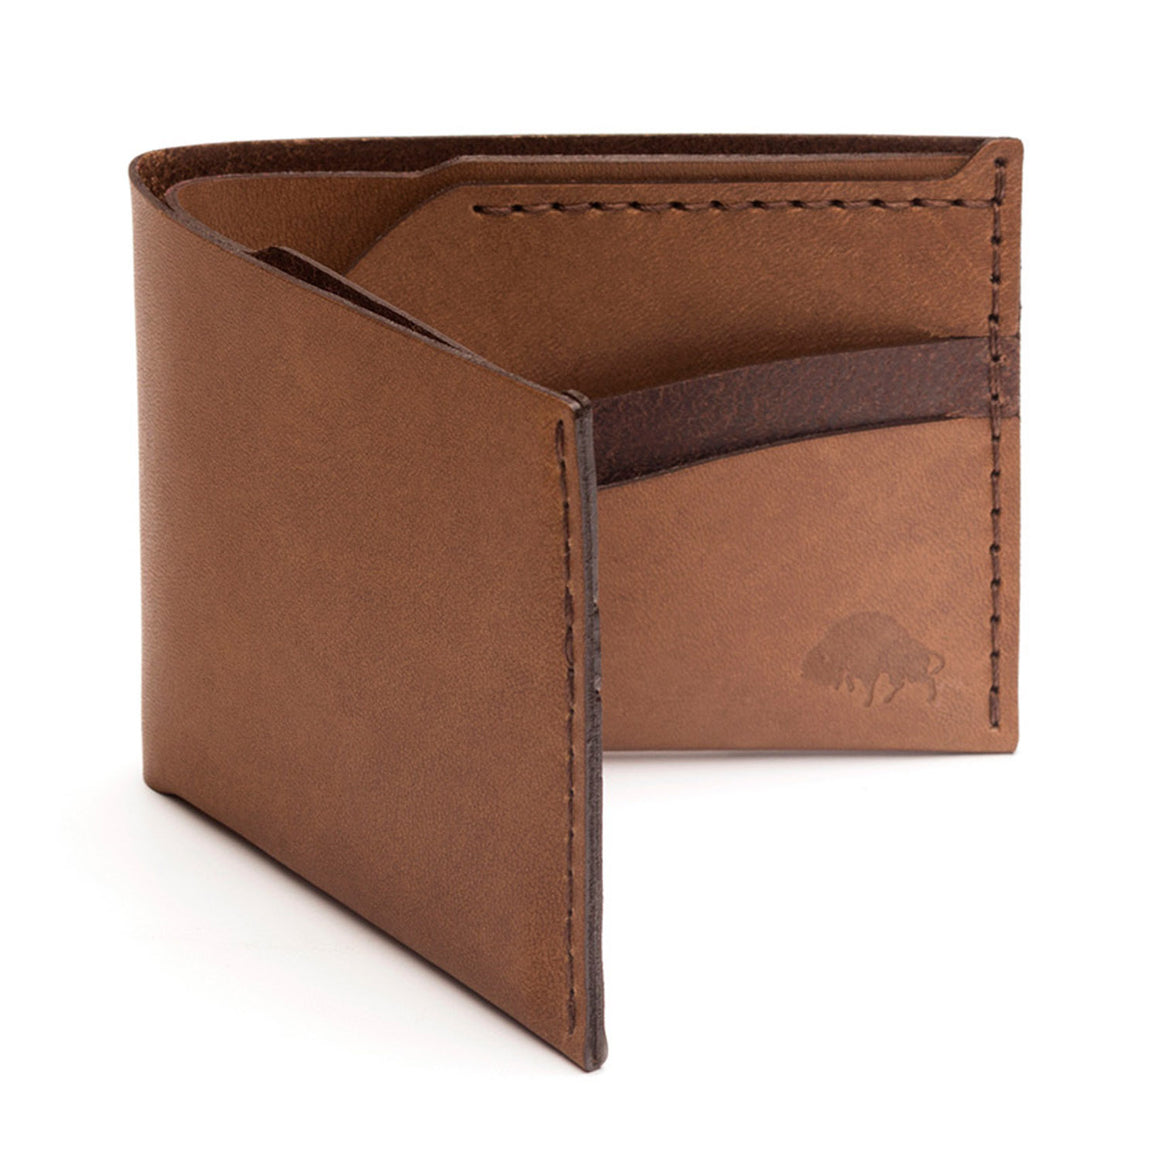 No. 6 Wallet - Whiskey - KESTREL